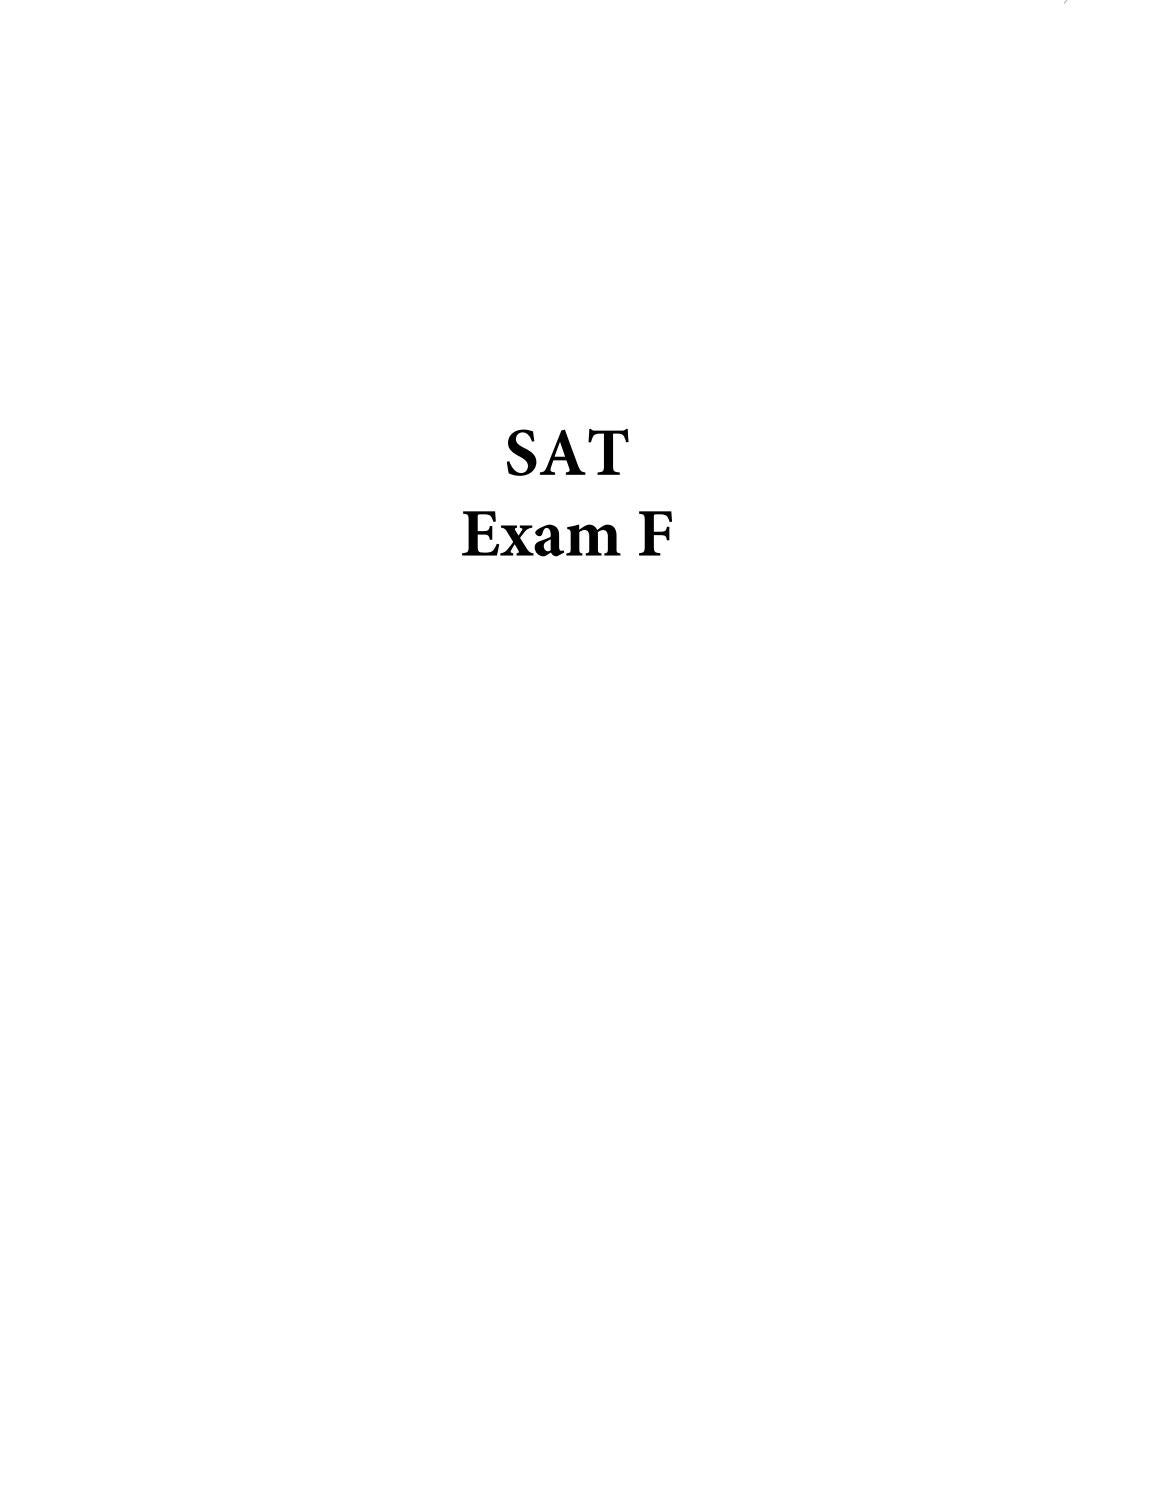 SAT Exam F By On Track Learning - Issuu